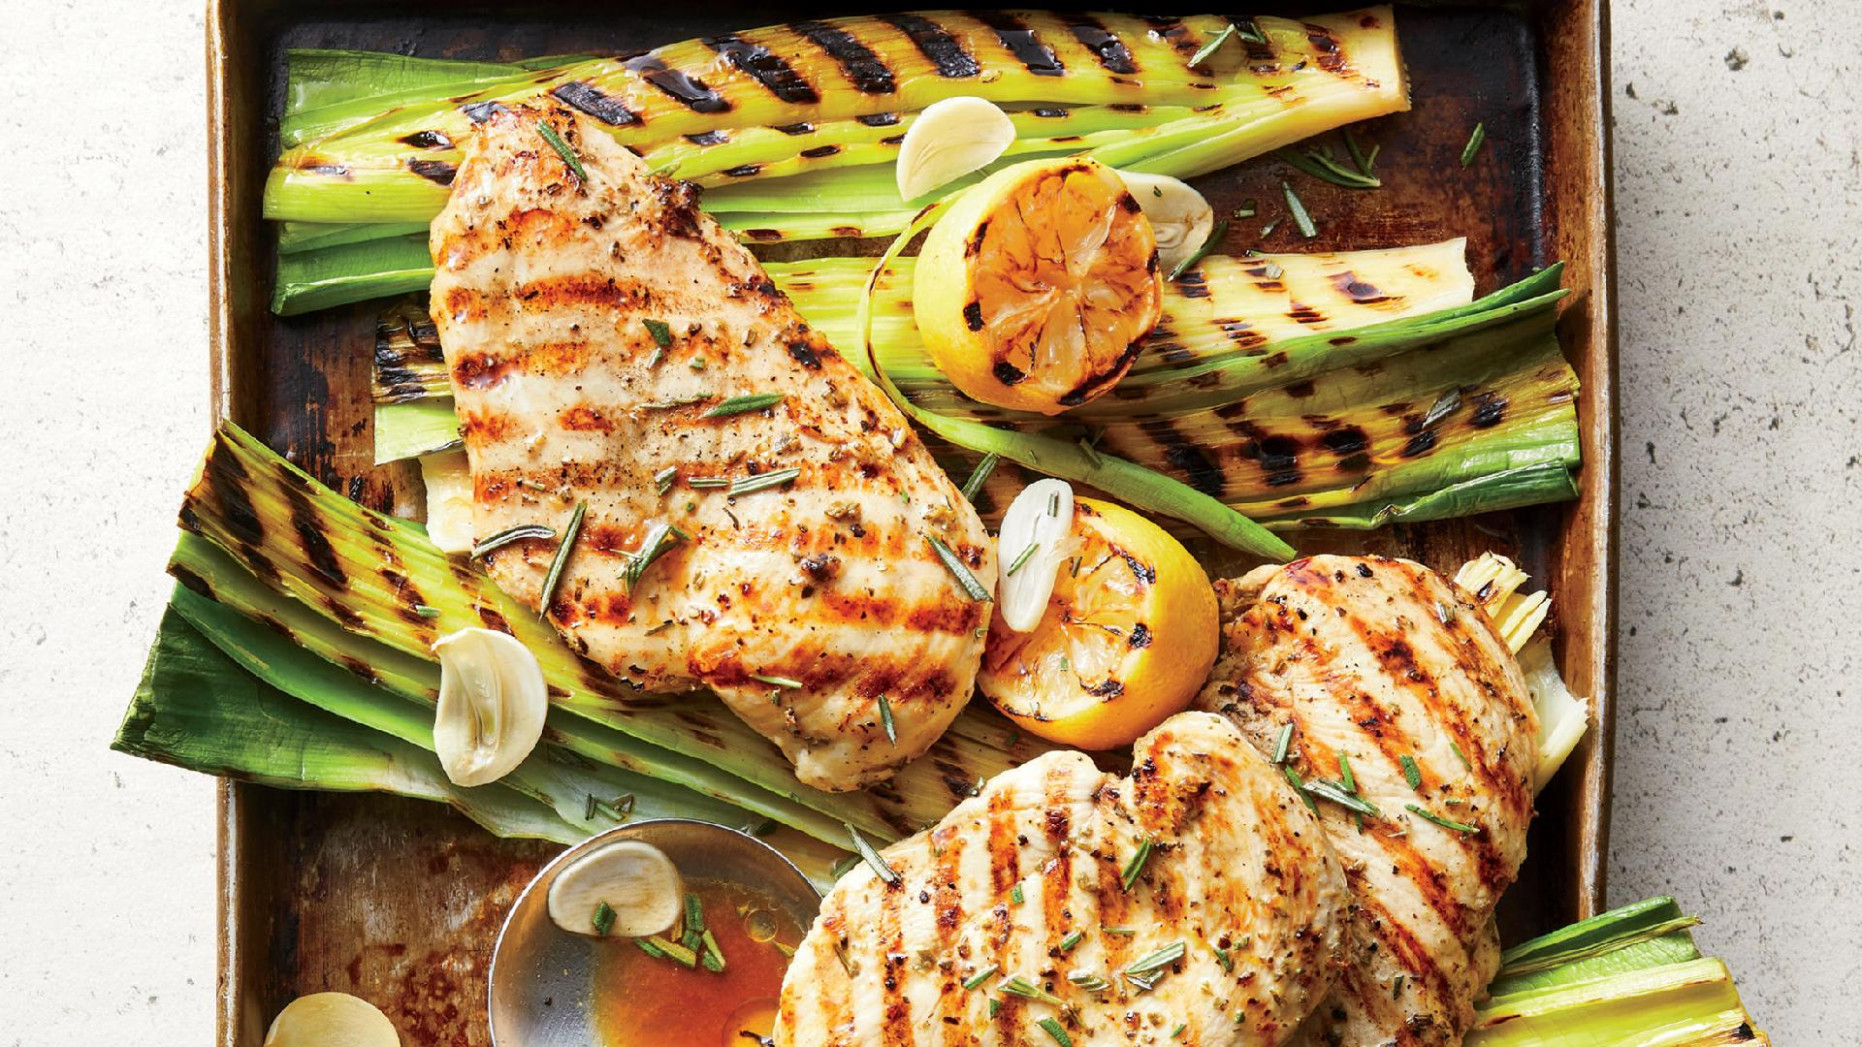 11 Minute Grilled Lemon Rosemary Chicken And Leeks - Rosemary Recipes Chicken